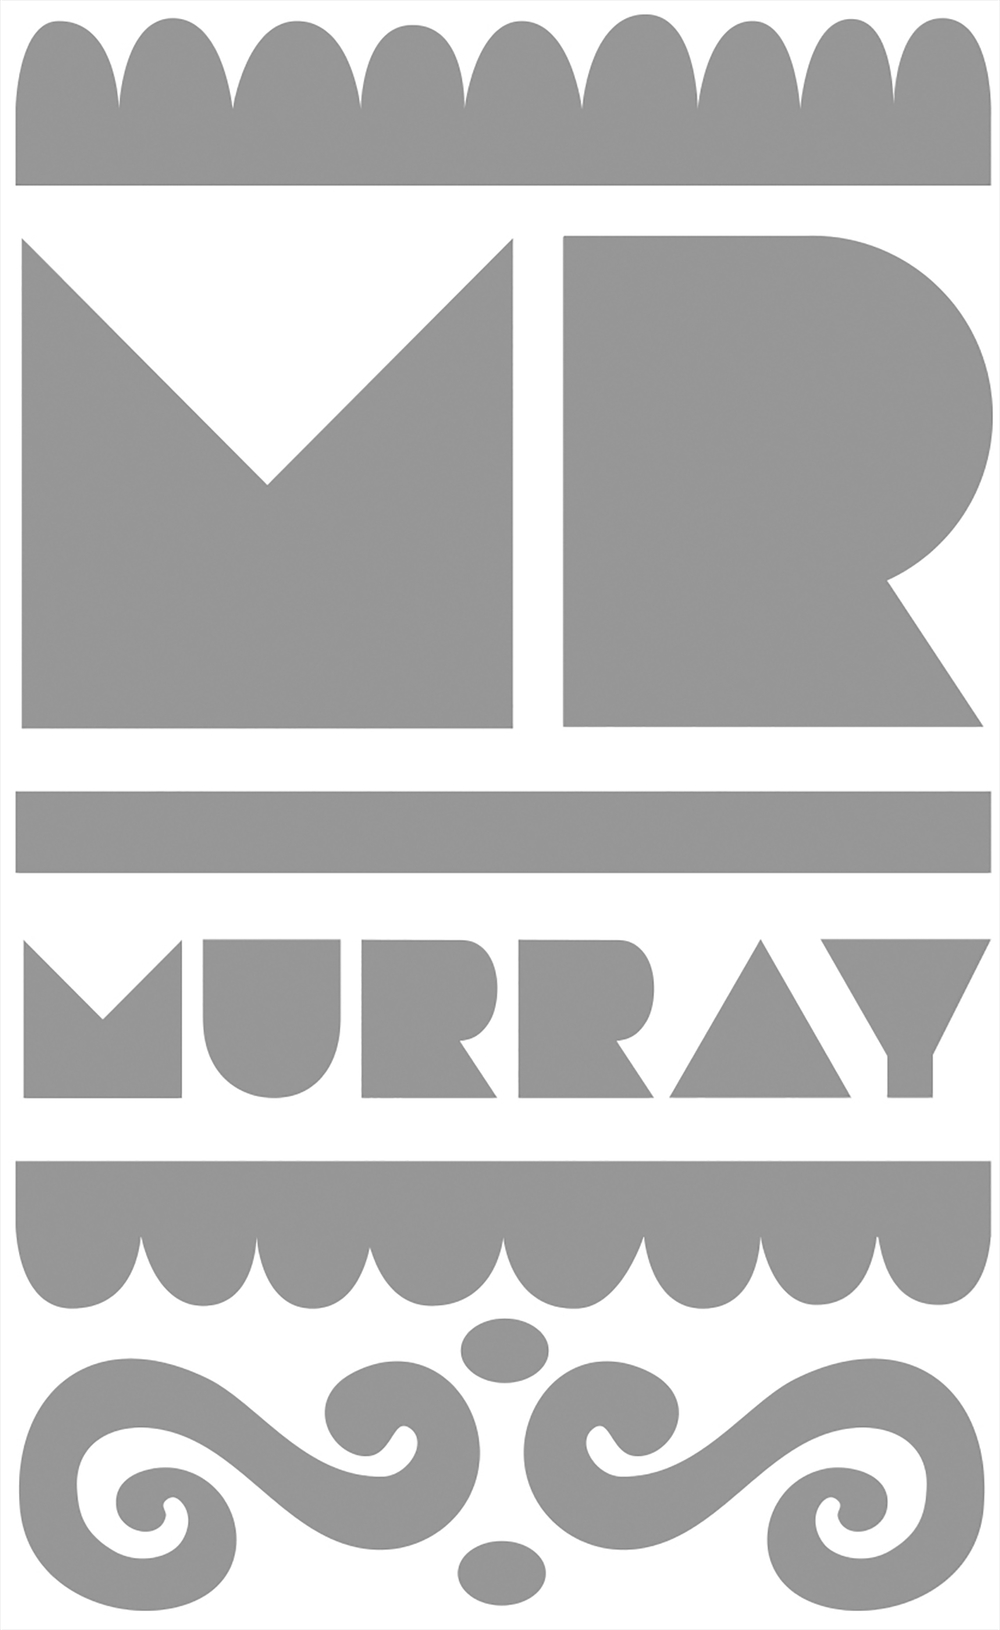 Mr Murray